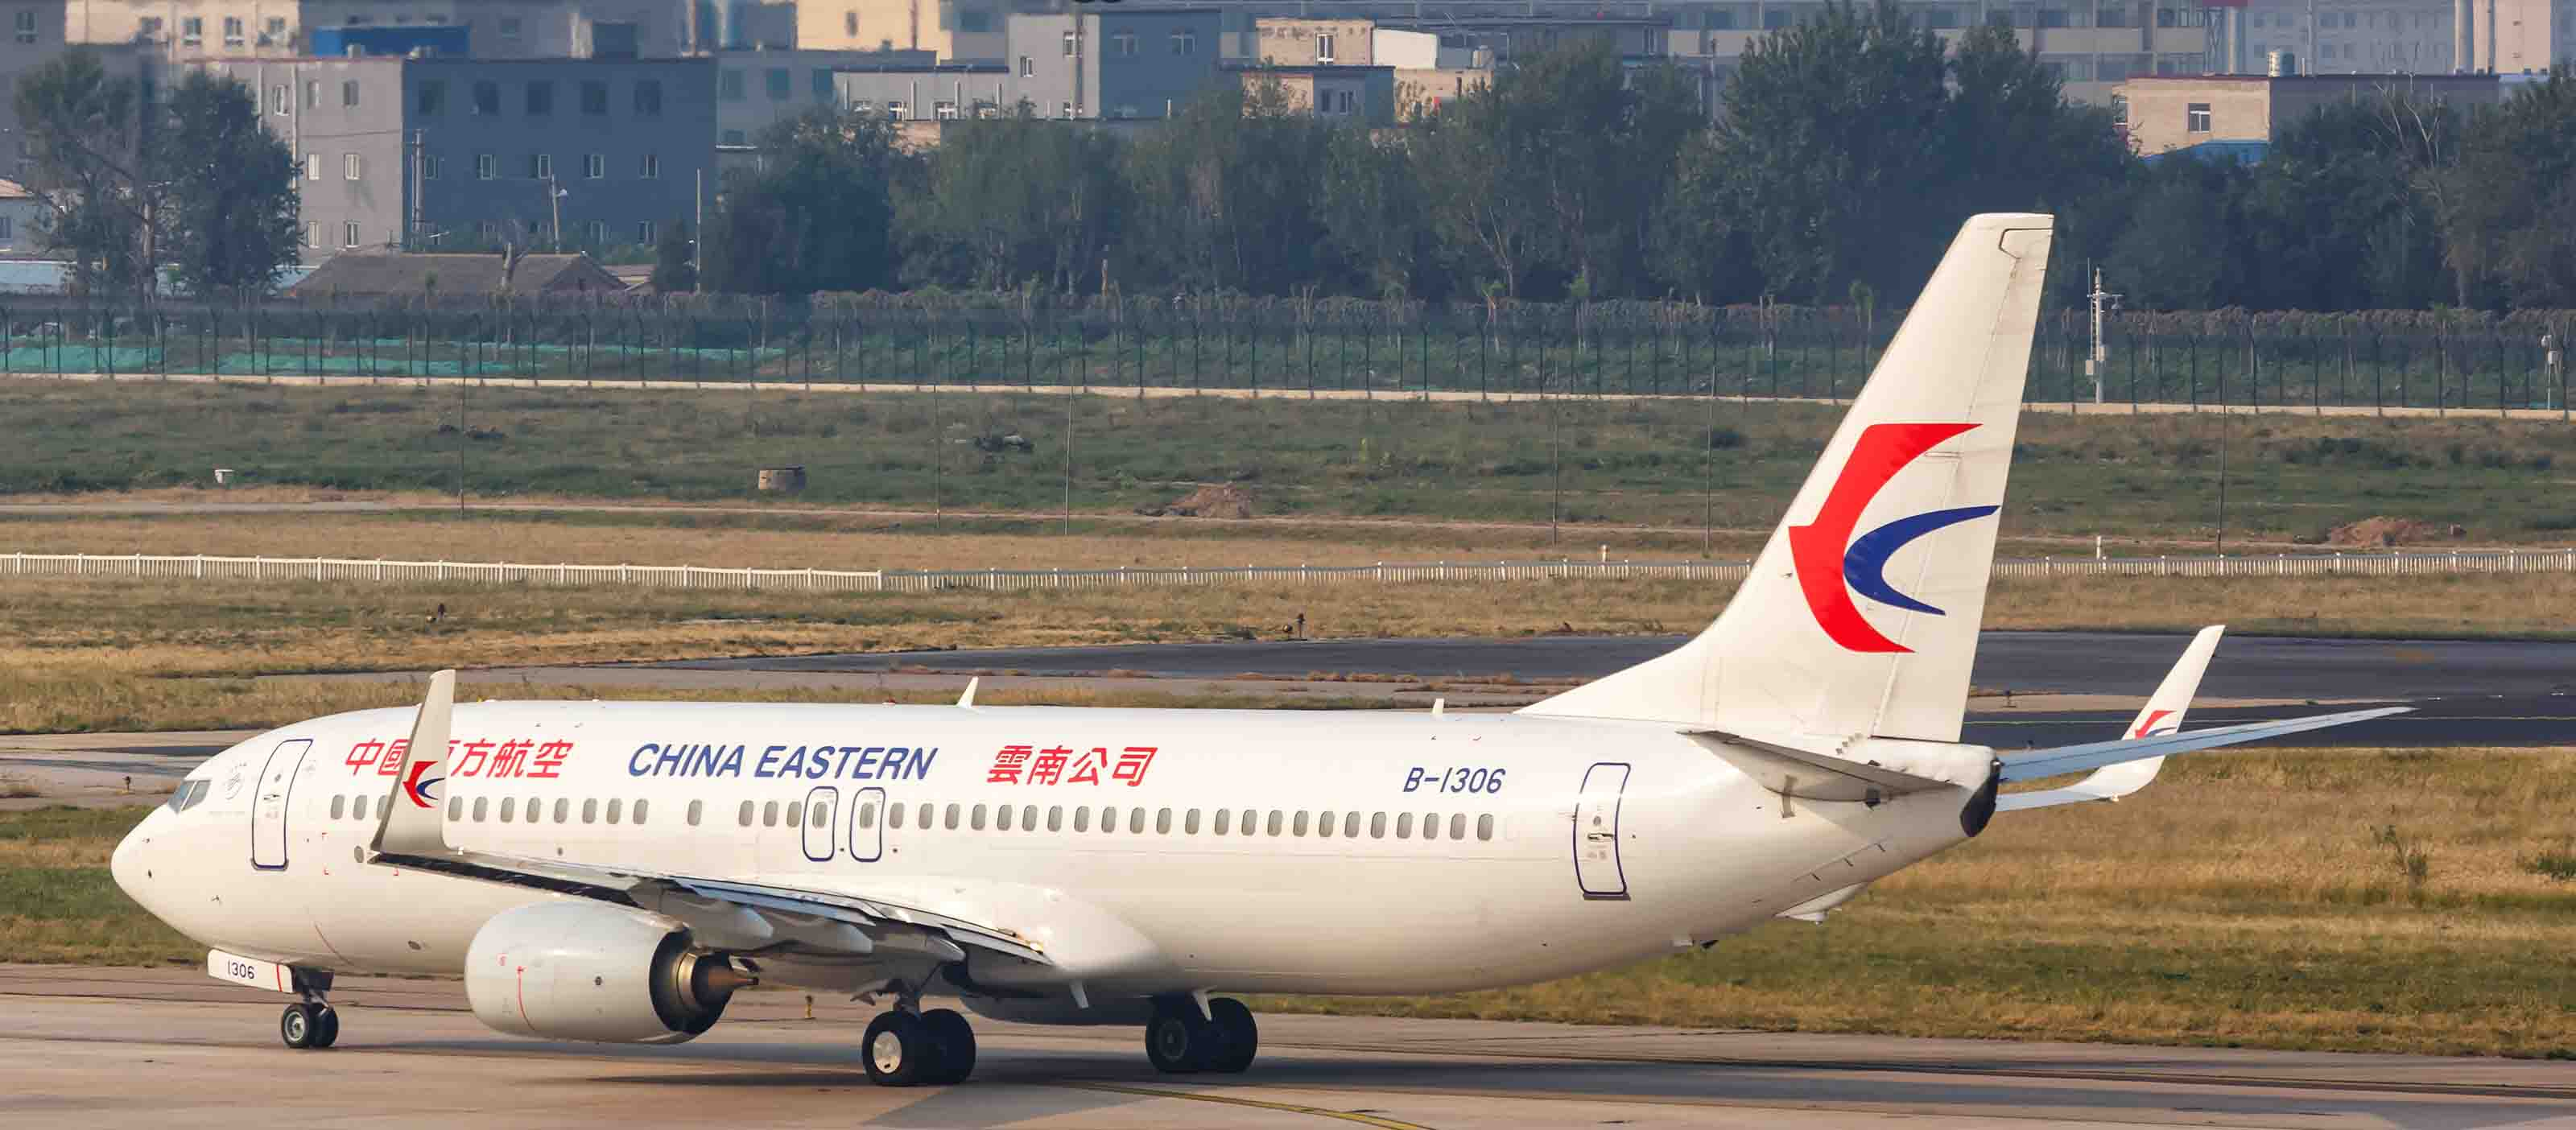 China Eastern Airlines uses GE Digital software to improve safety